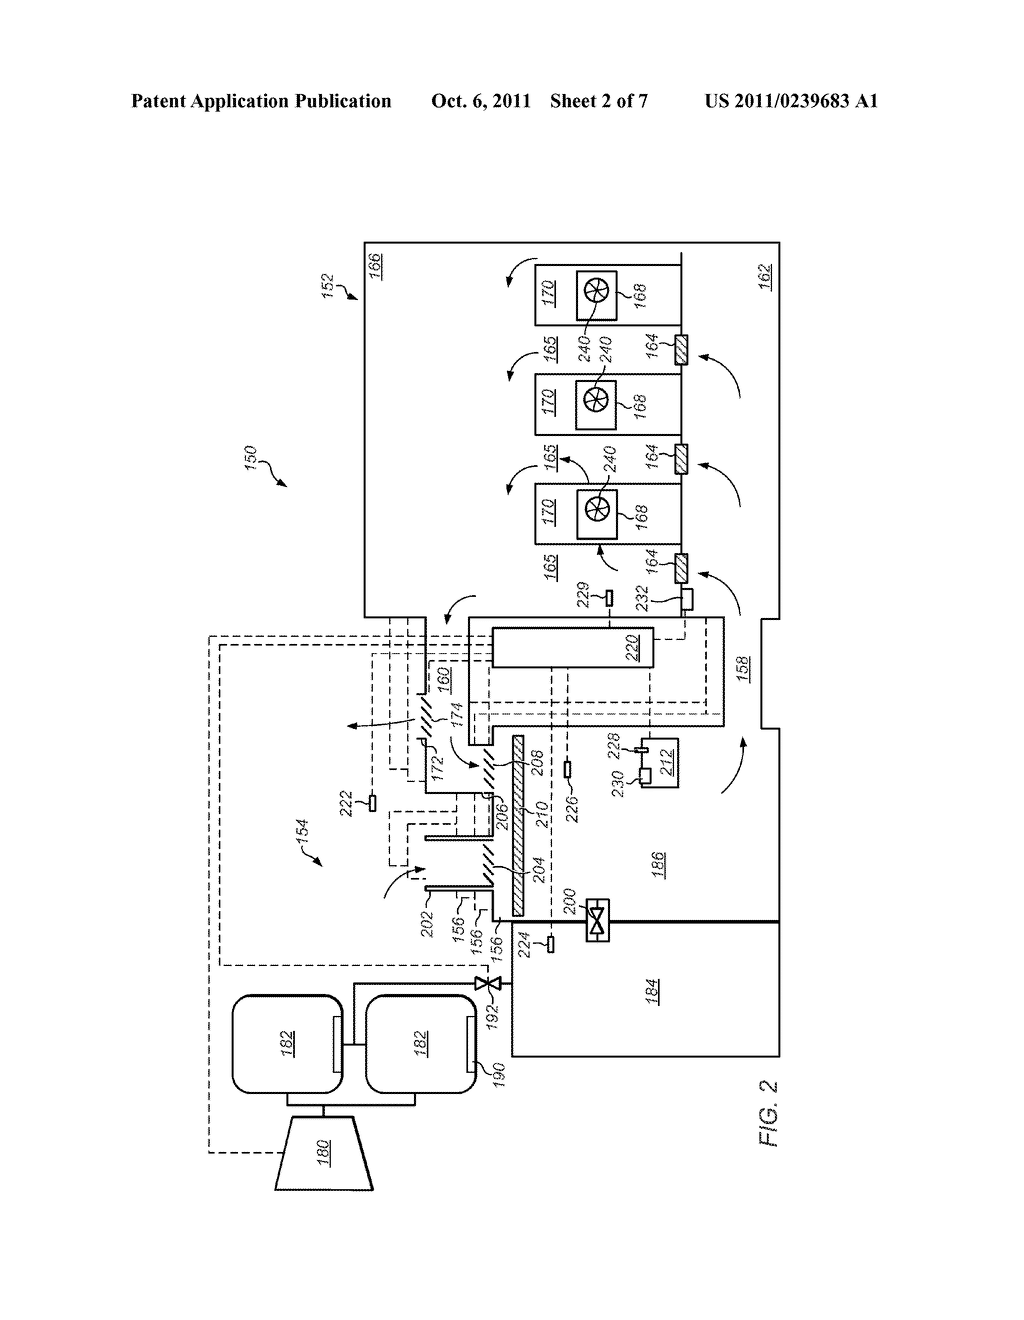 Compressed Air Cooling System For Data Center Diagram Schematic And Image 03